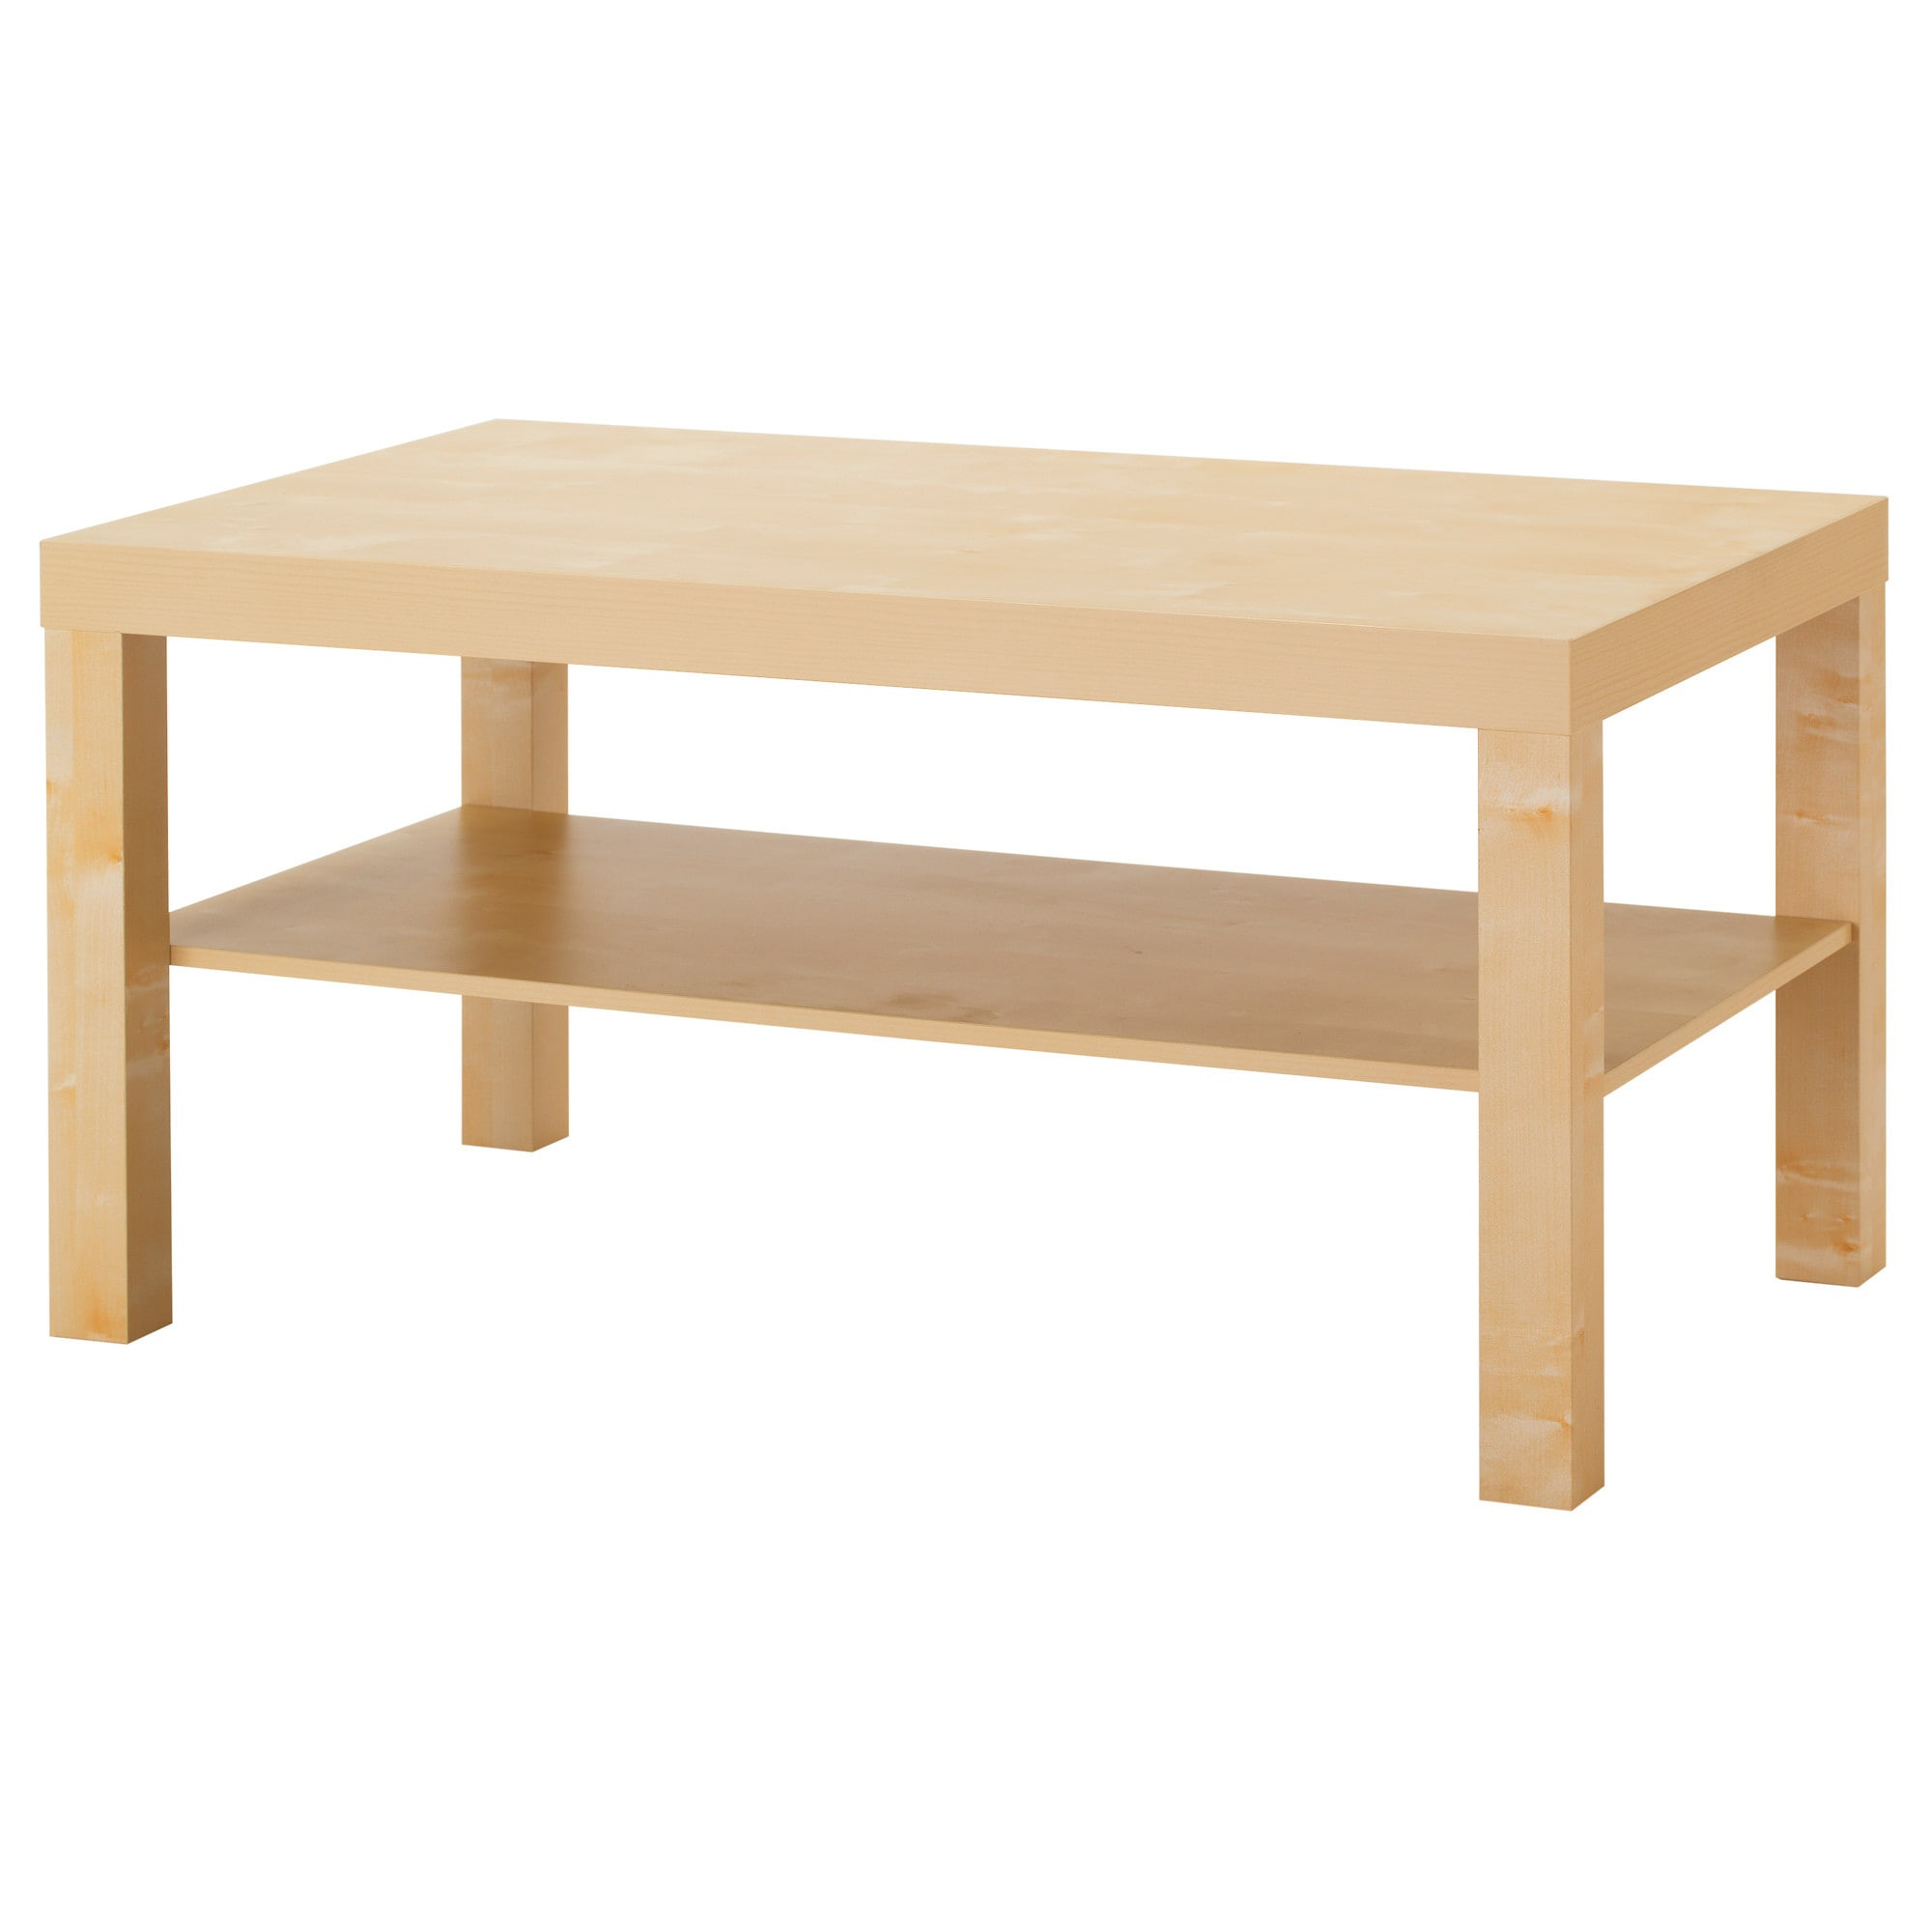 Best ideas about Lack Coffee Table . Save or Pin LACK Coffee table Birch effect 90 x 55 cm IKEA Now.